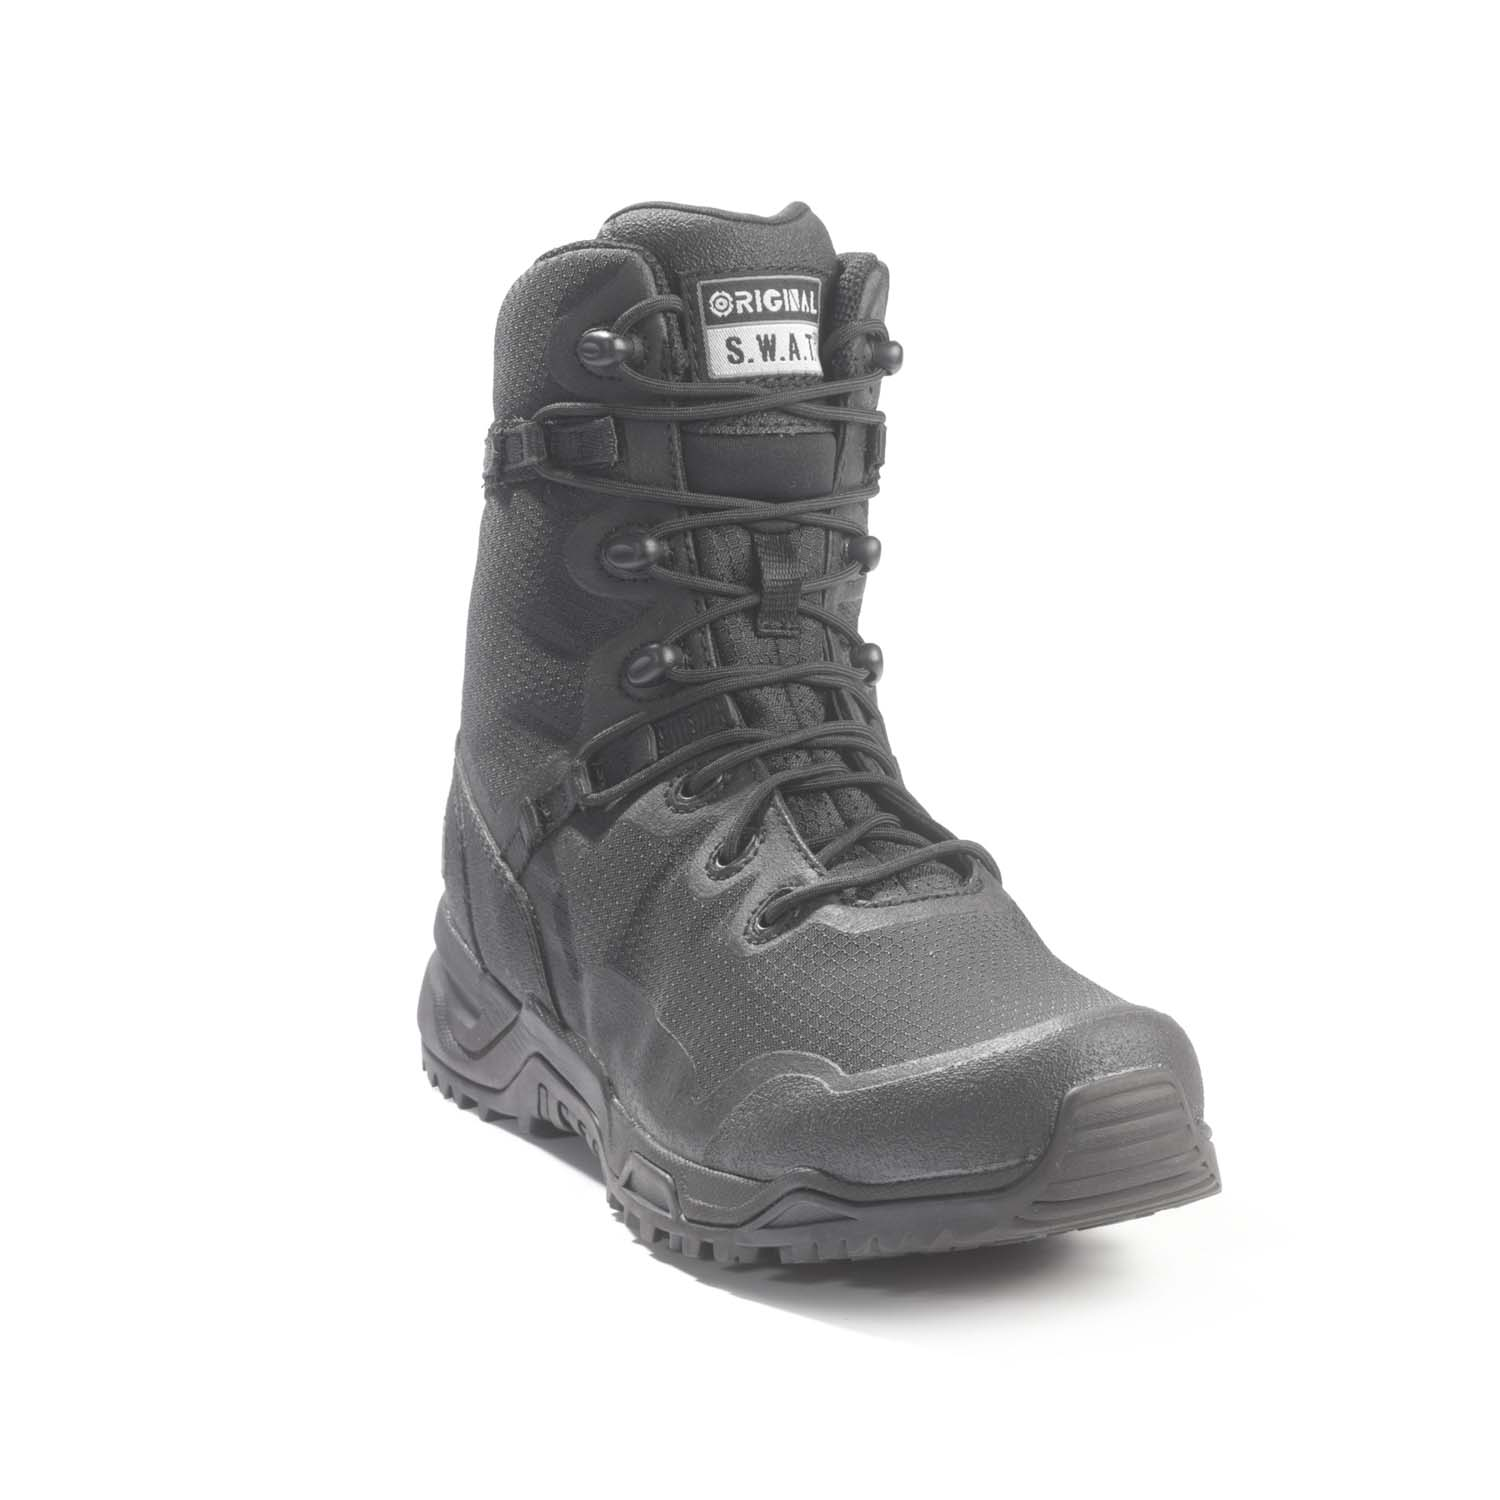 "Original S.W.A.T. Alpha Fury 8"" Boot"